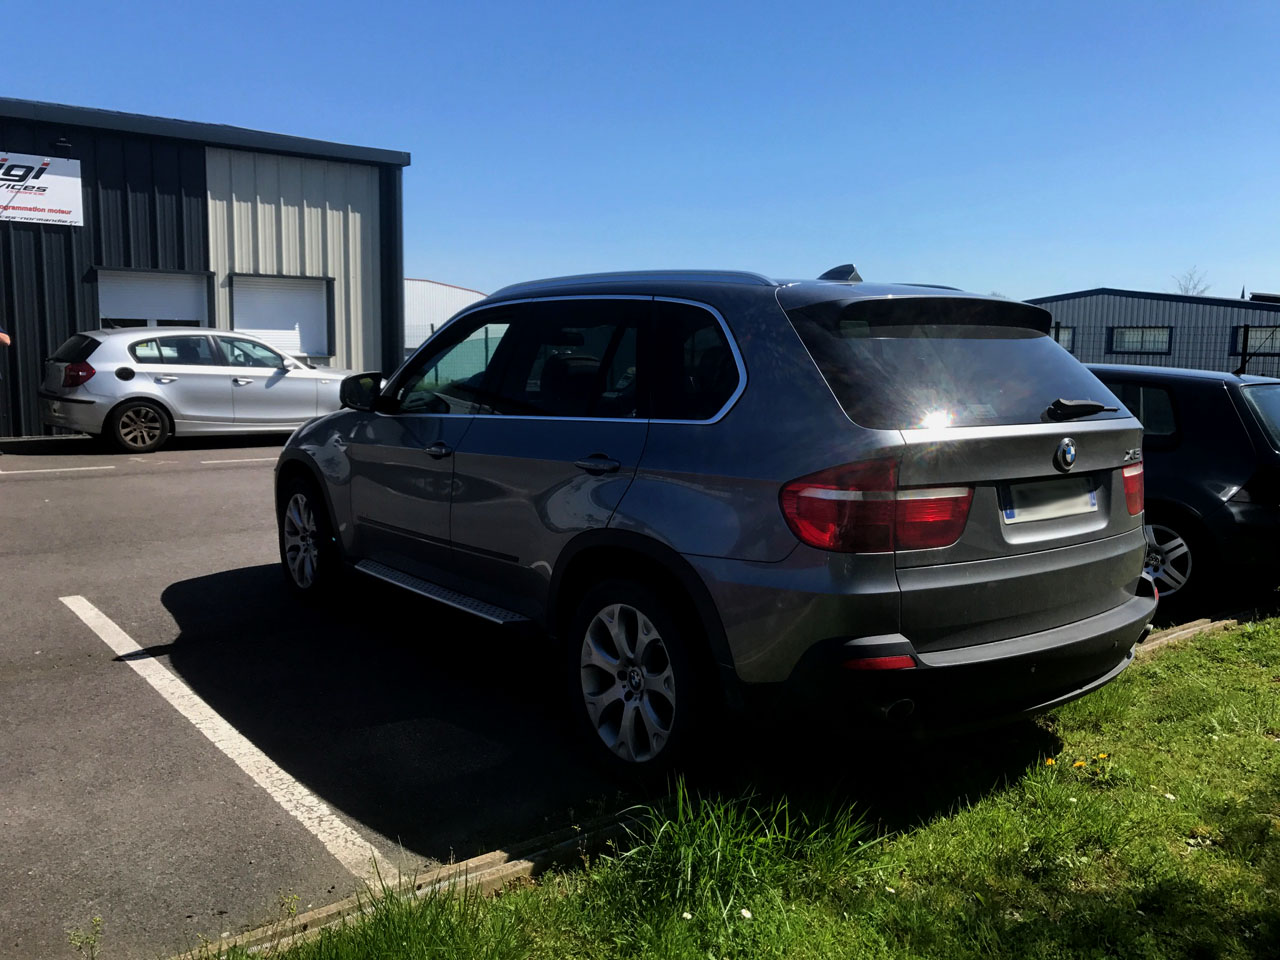 Reprogrammation BMW X5 3.0sd 286cv à 330cv - Digiservices Rouen Normandie